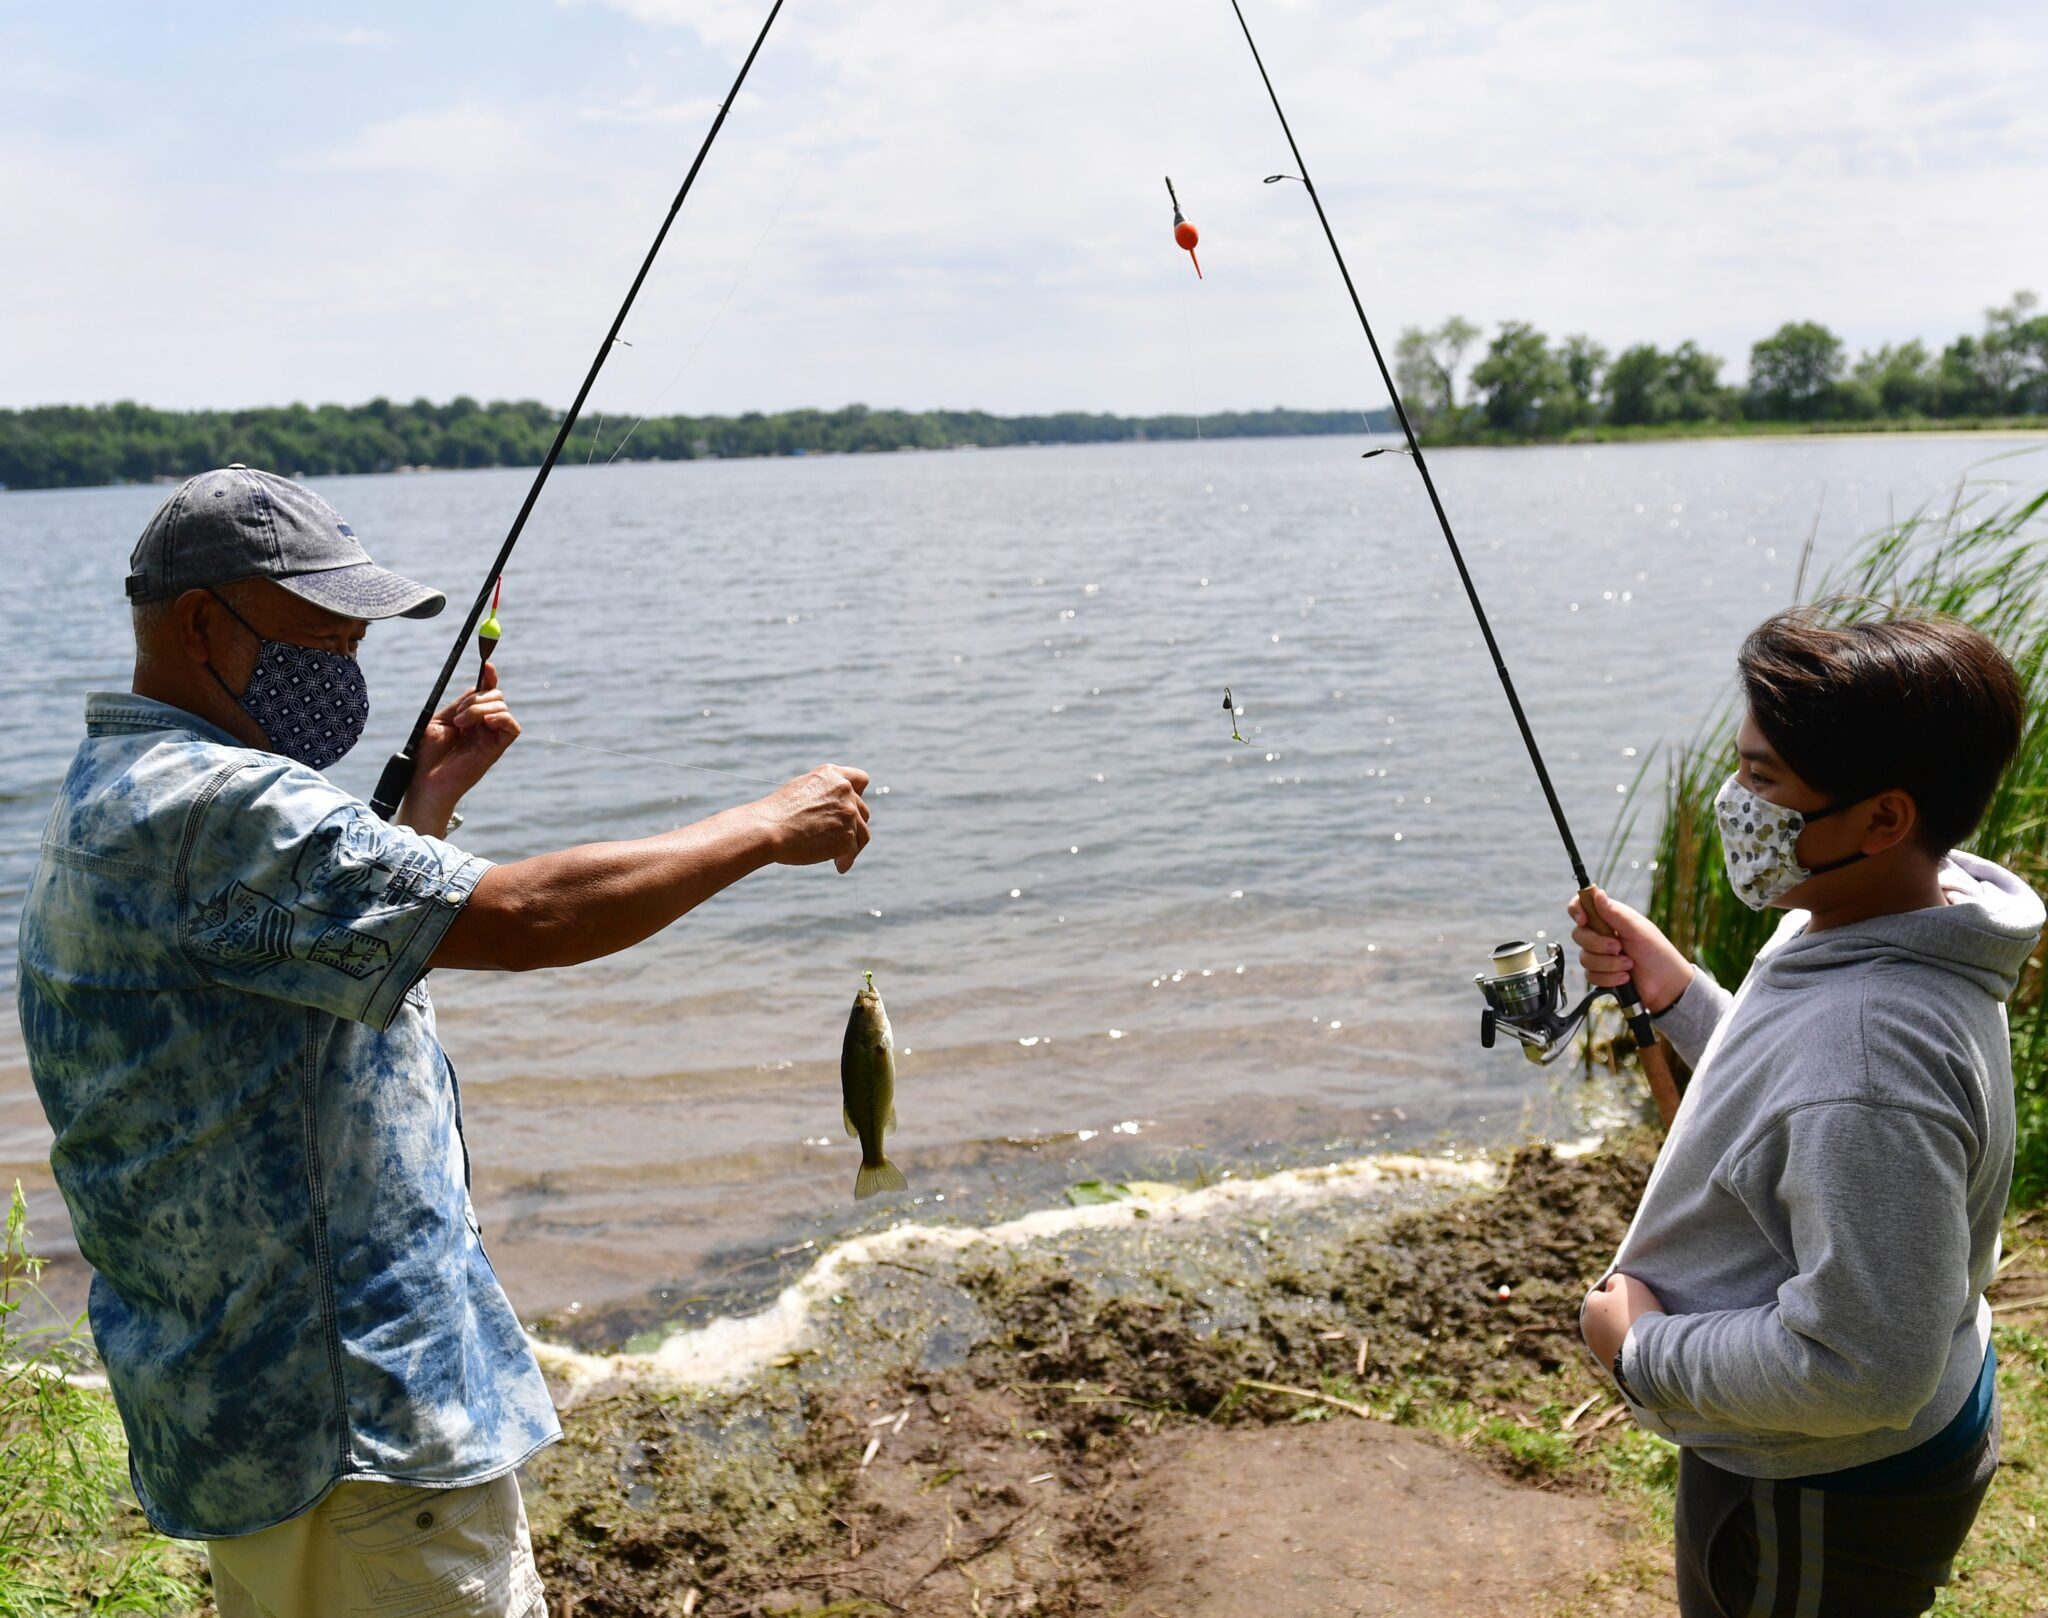 COBB PARKS ANNUAL FISHING RODEO